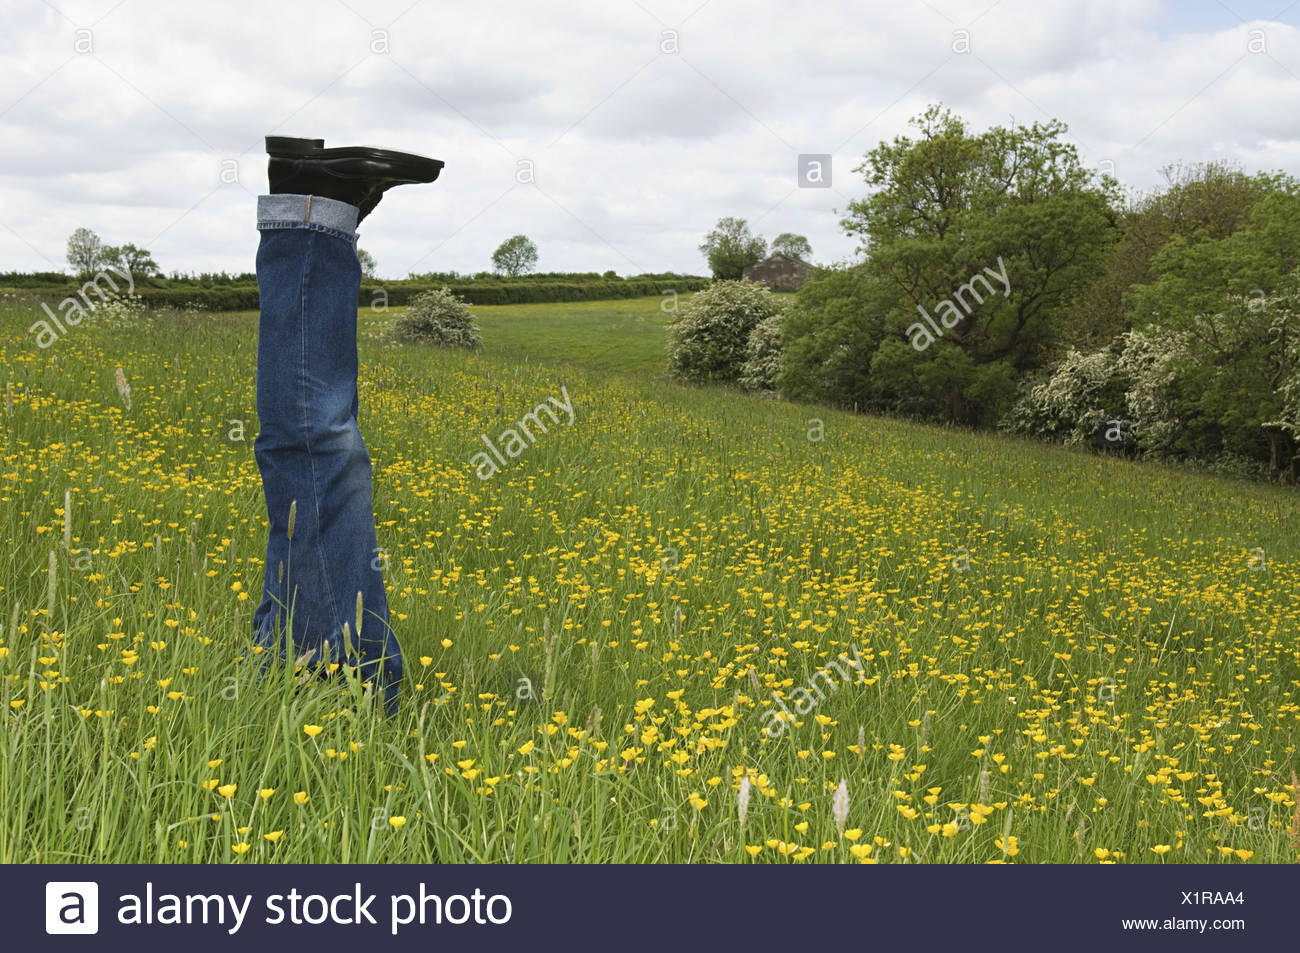 A person lying in a flower meadow with legs upright in the air  England - Stock Image